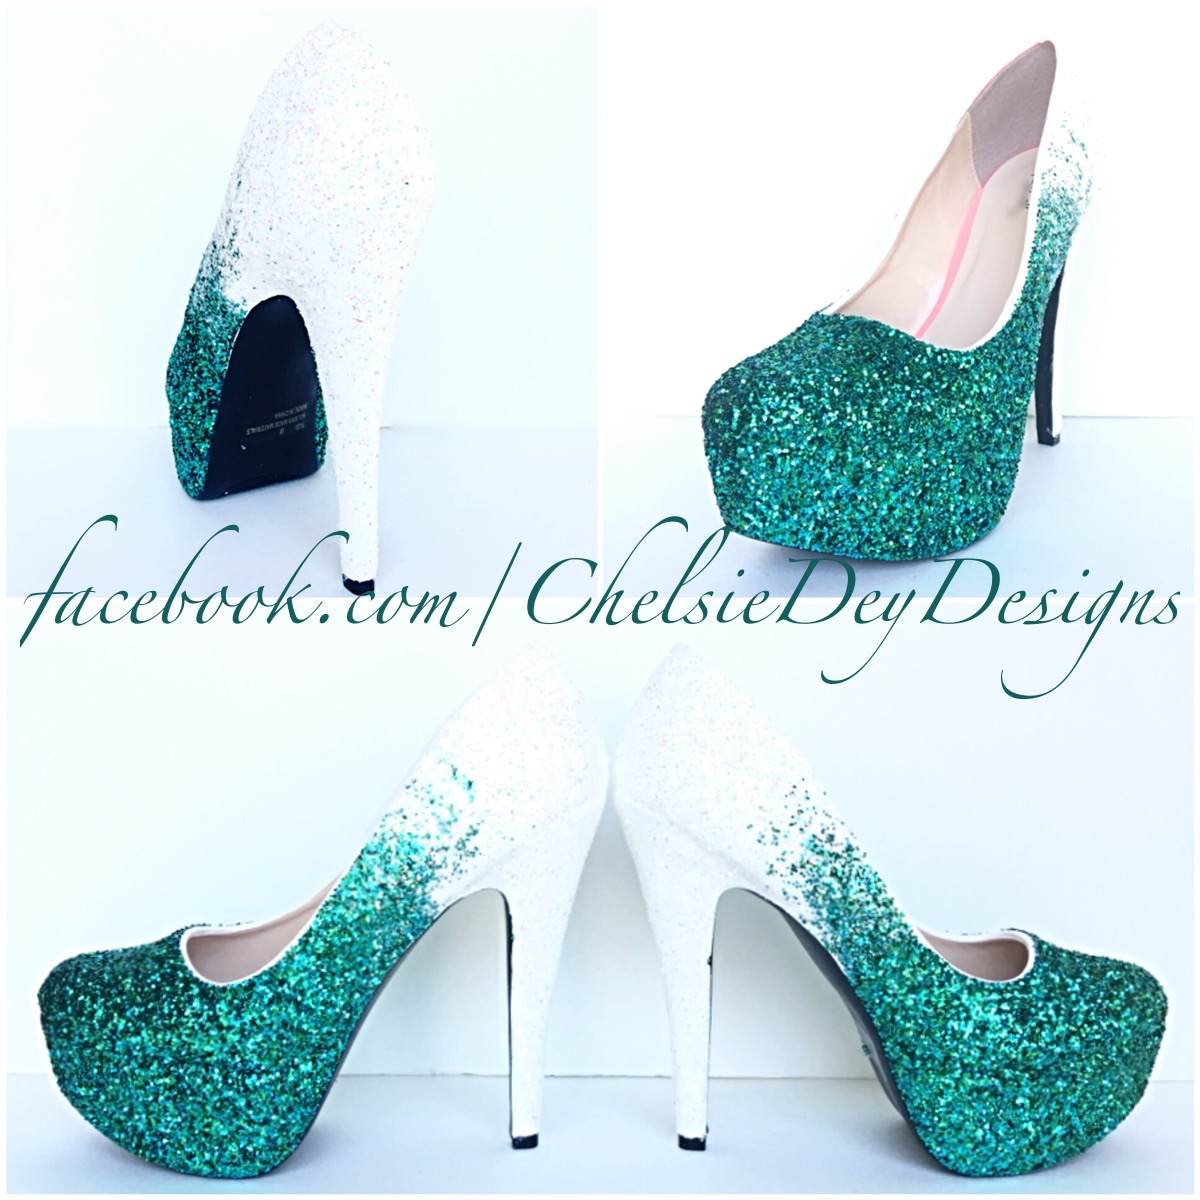 6a4691ad0 Glitter High Heels - Green Ombre Pumps - Seafoam and White - Platform Shoes  on Storenvy